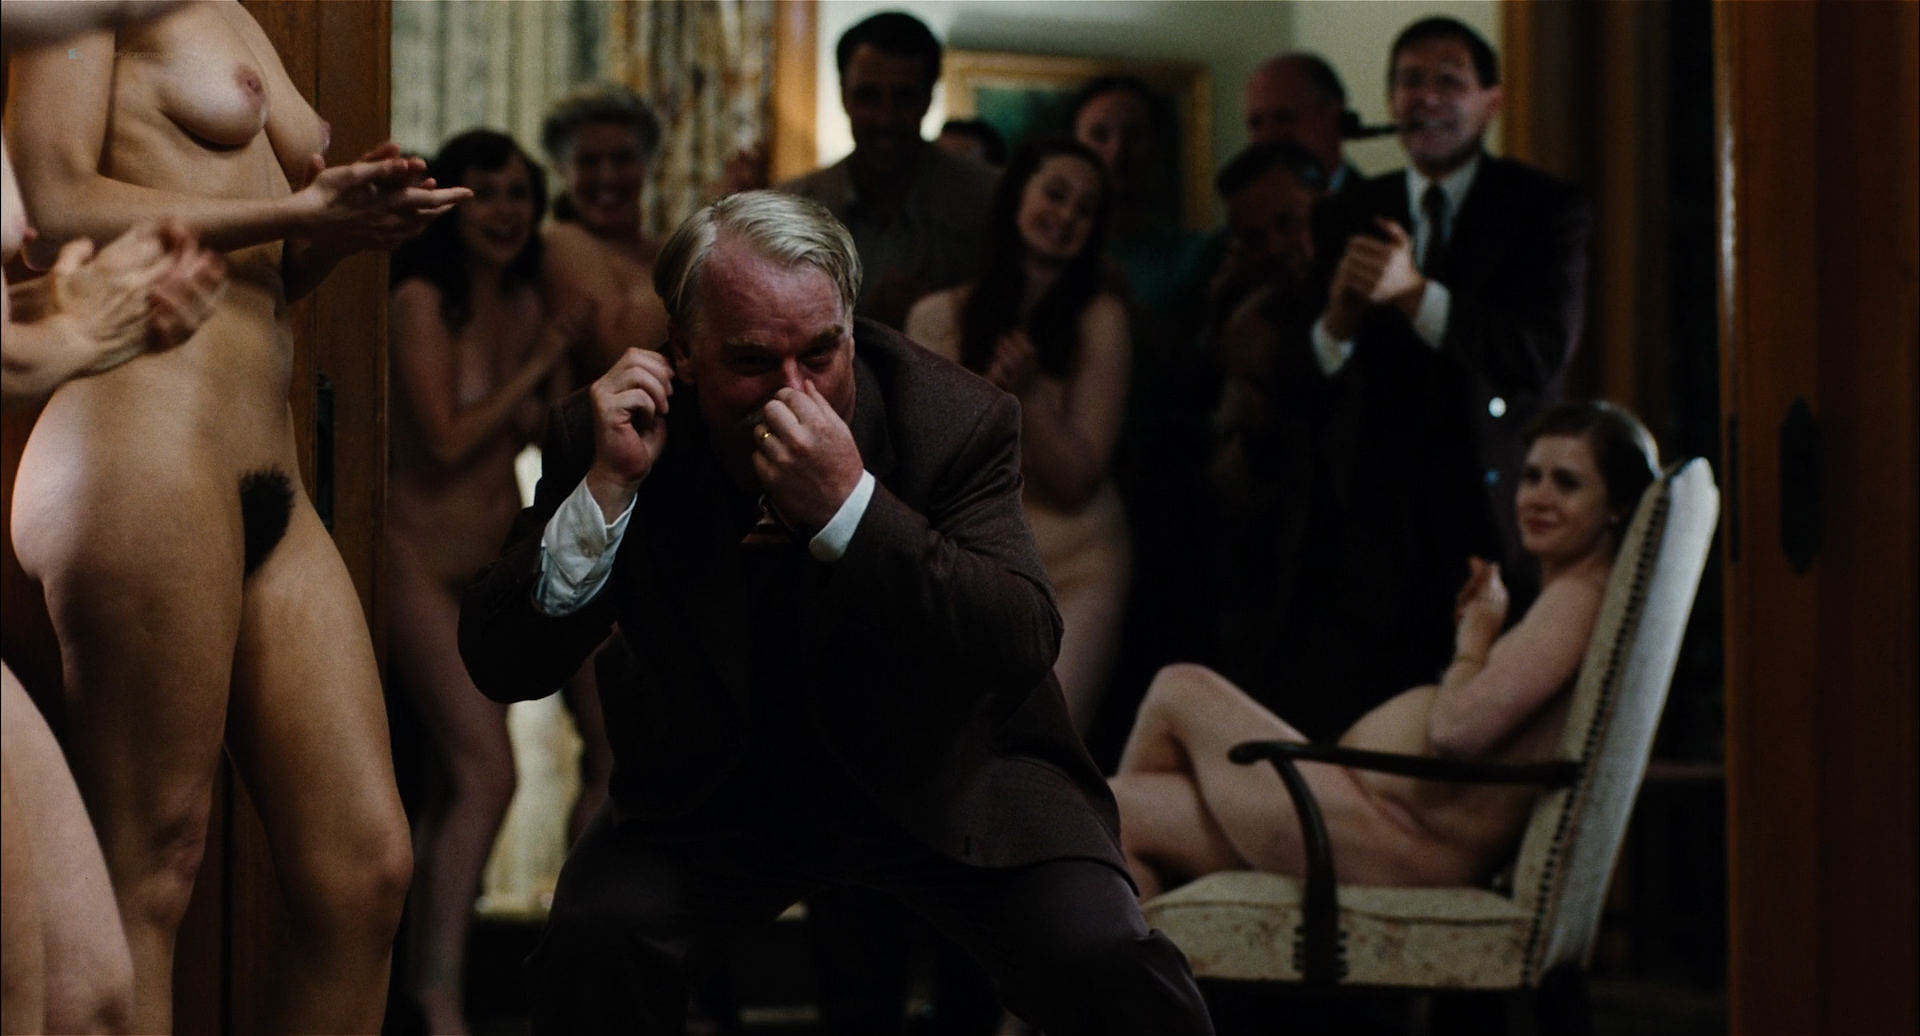 Amy Ferguson nude topless, Liz Clare, Katie Boland nude dancing Amy Adams nude covered and Jennifer Neala Page nude sex - The Master (2012) HD 1080p BluRay (14)